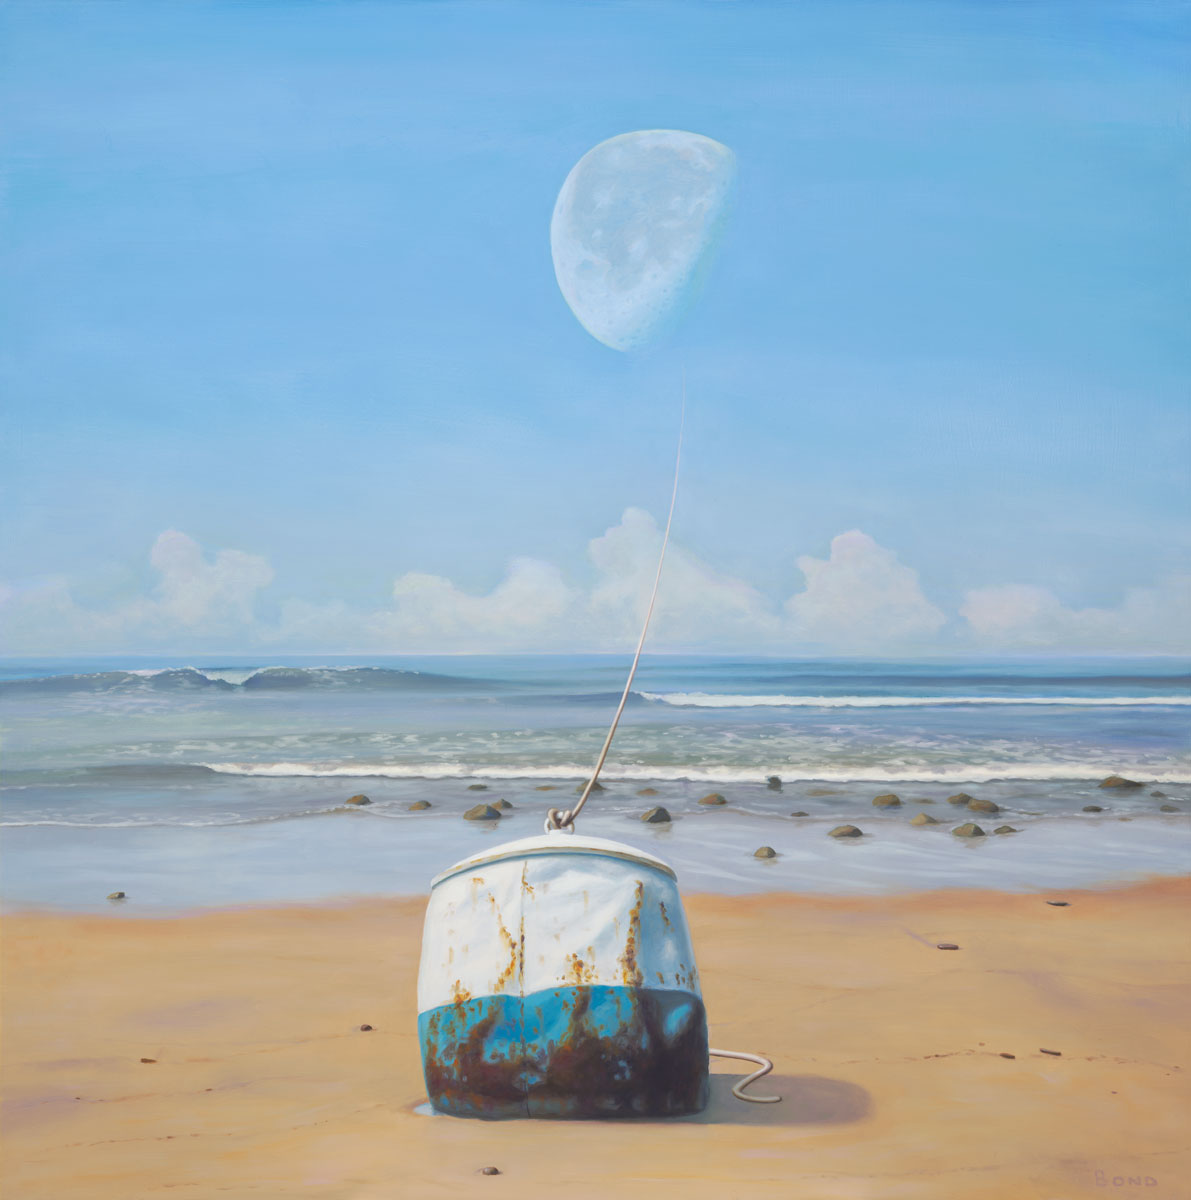 The mooring, painting of a rusted buoy sitting on the edge of the sand with a rope that goes up to the moon, mooring, tied, art with moon, rope, ship, rusty, beach, dream, art about love and companionship, ocean, sea, illustion, buoy, floating, drift, optical illustion, waves, surf, sand, moon, lunar, orbit, tethered, trompe l'oeil, soulful uplifting inspirational art, soul stirring illusion art, art with poetry, romantic art,  surrealism, surreal art, dreamlike imagery, fanciful art, fantasy art, dreamscape visual, metaphysical art, spiritual painting, metaphysical painting, spiritual art, whimsical art, whimsy art, dream art, fantastic realism art, limited edition giclee, signed art print, fine art reproduction, original magic realism oil painting by Paul Bond